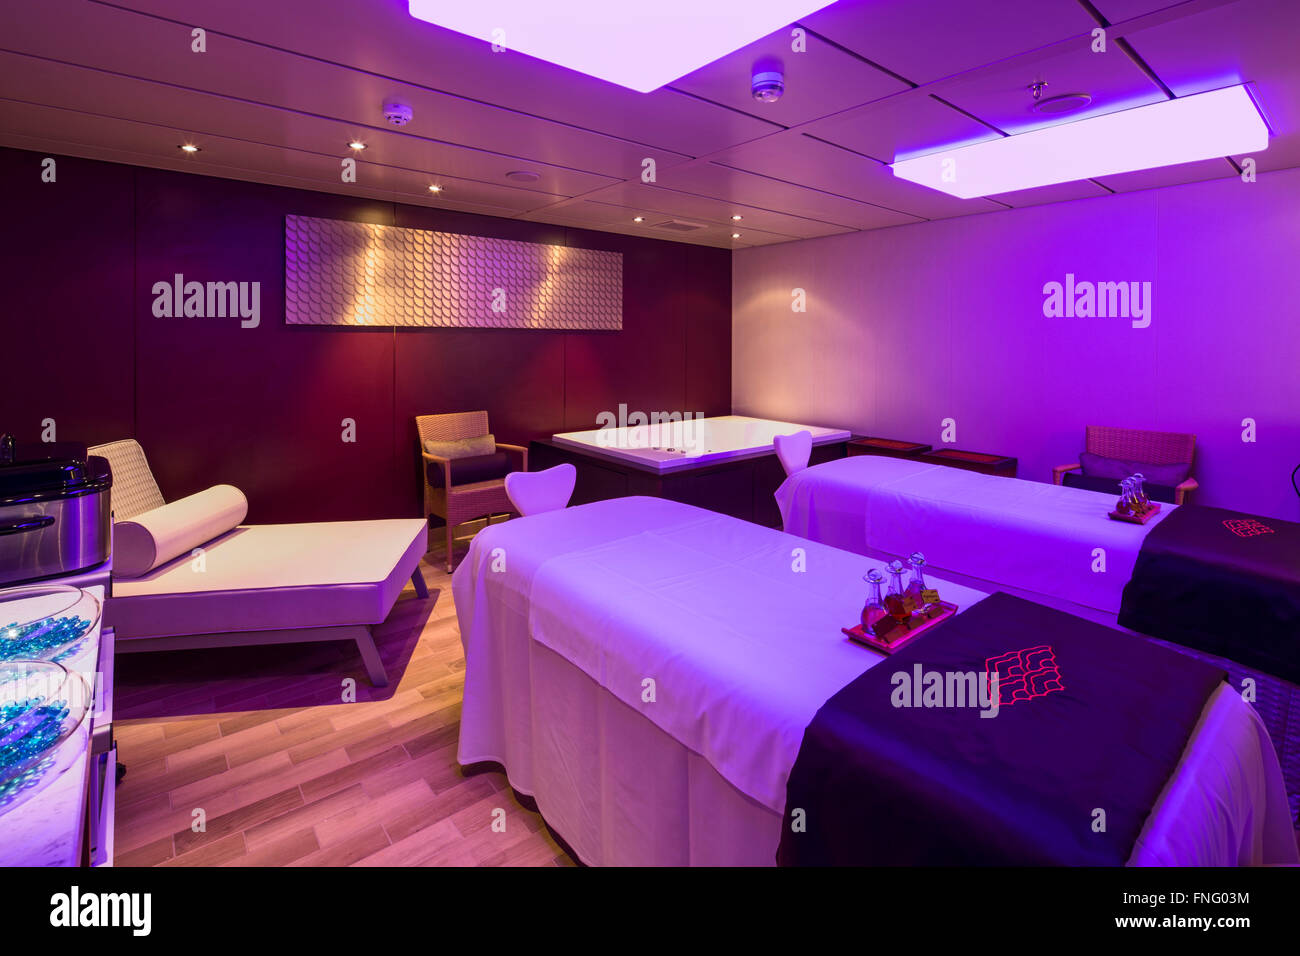 Treatment room with colour changing lighting. Norwegian Cruise Ship – The Escape, Southampton, United Kingdom. Architect: - Stock Image